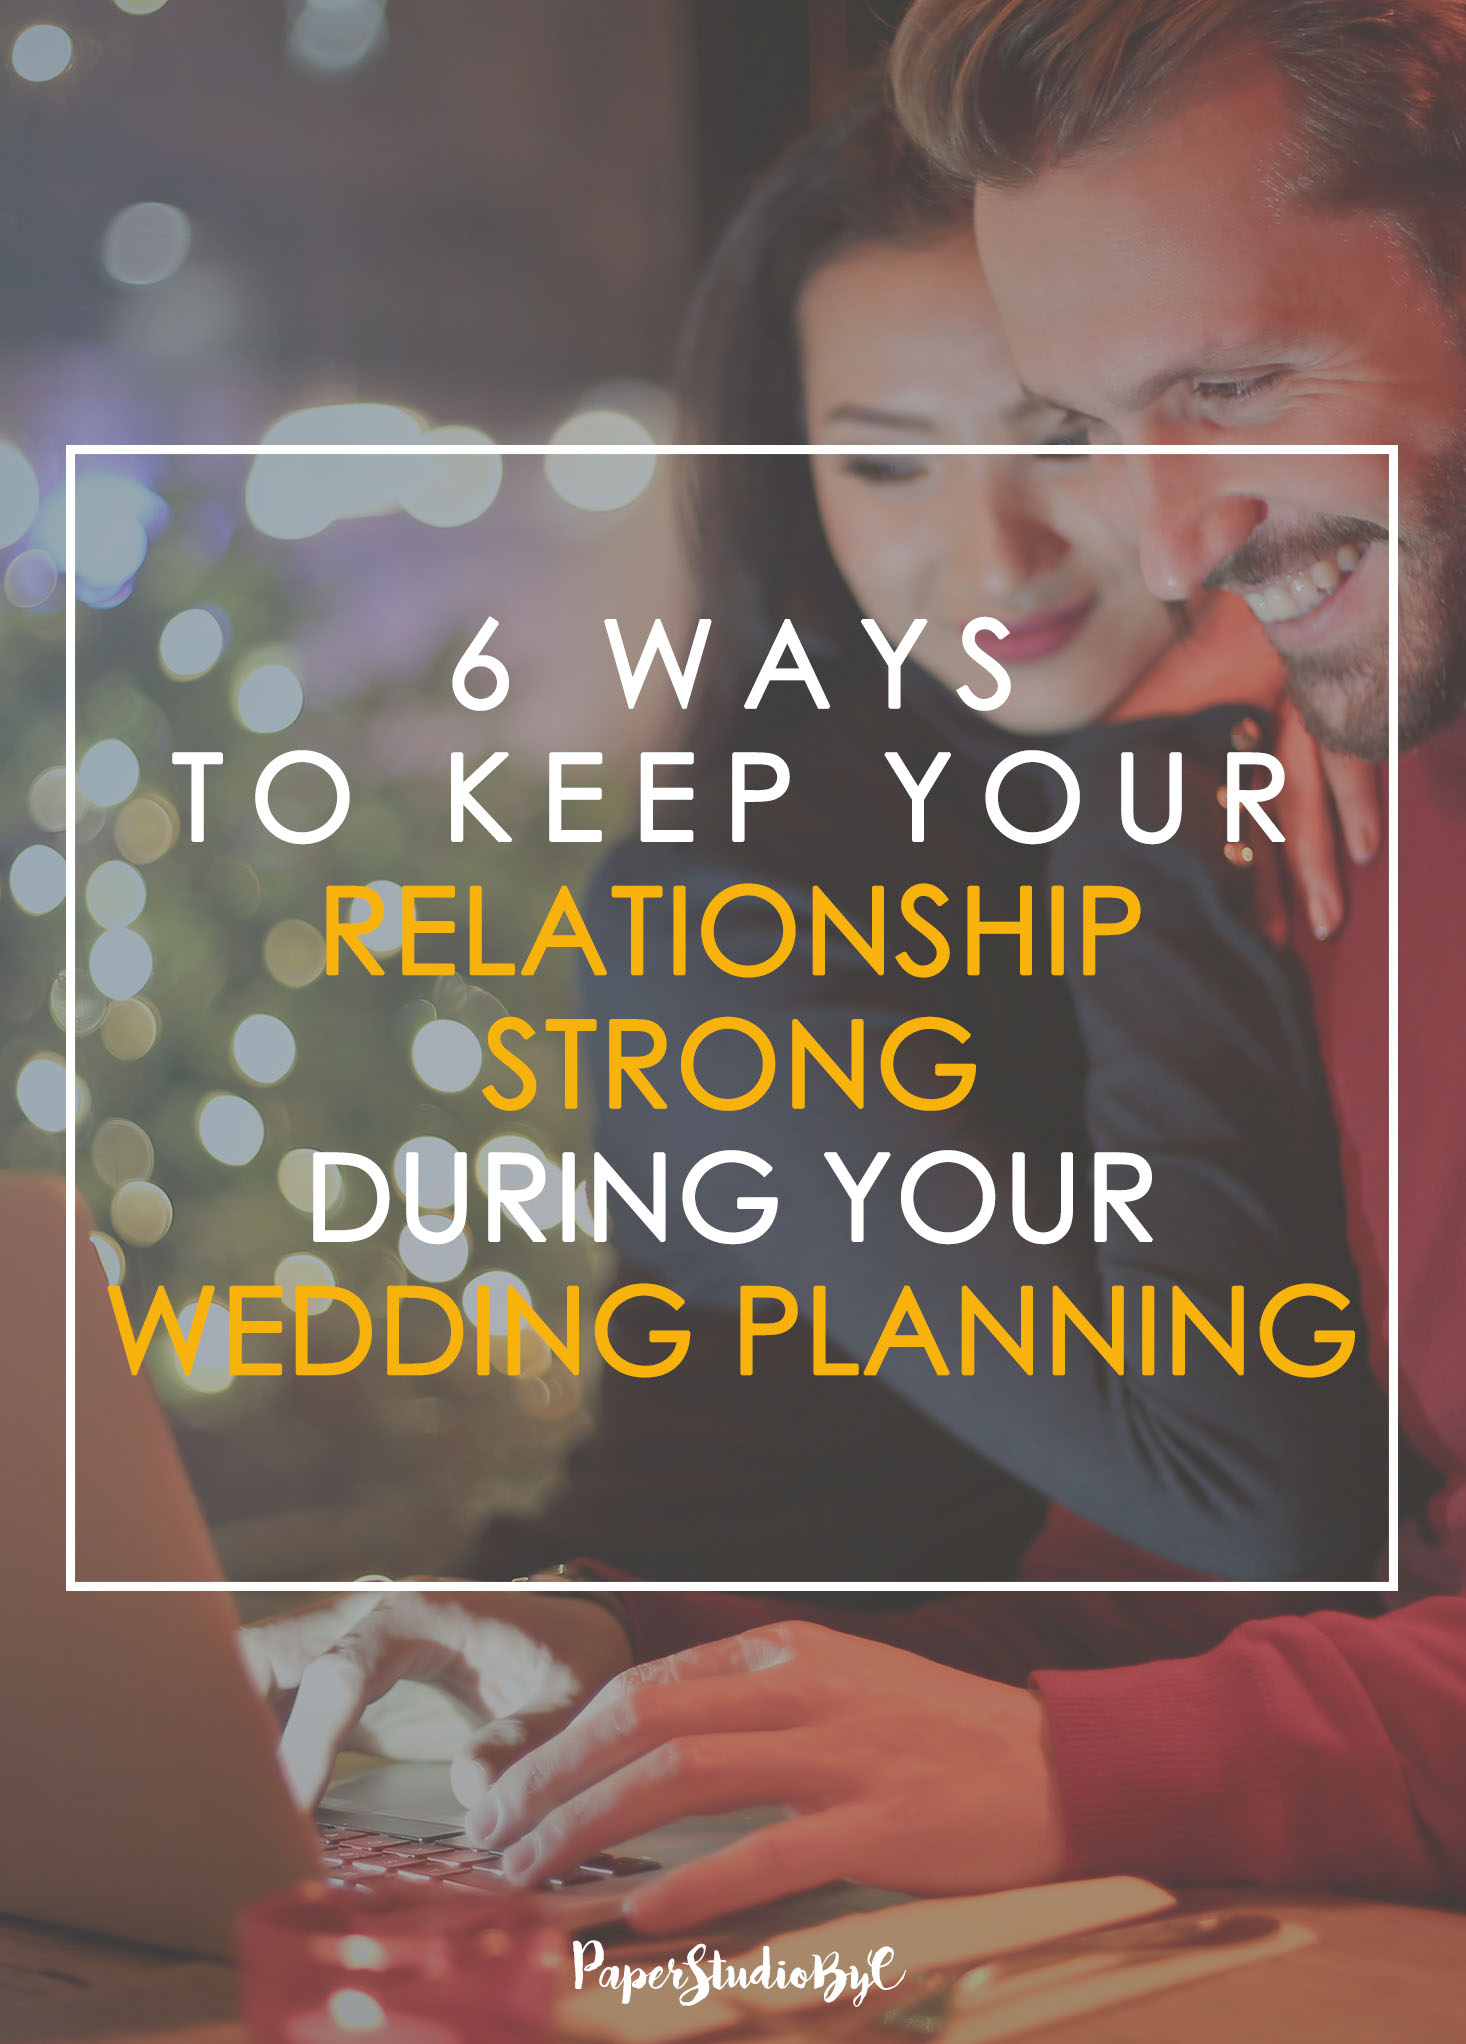 6 Ways To Keep Your Relationship Strong During Your Wedding Planning